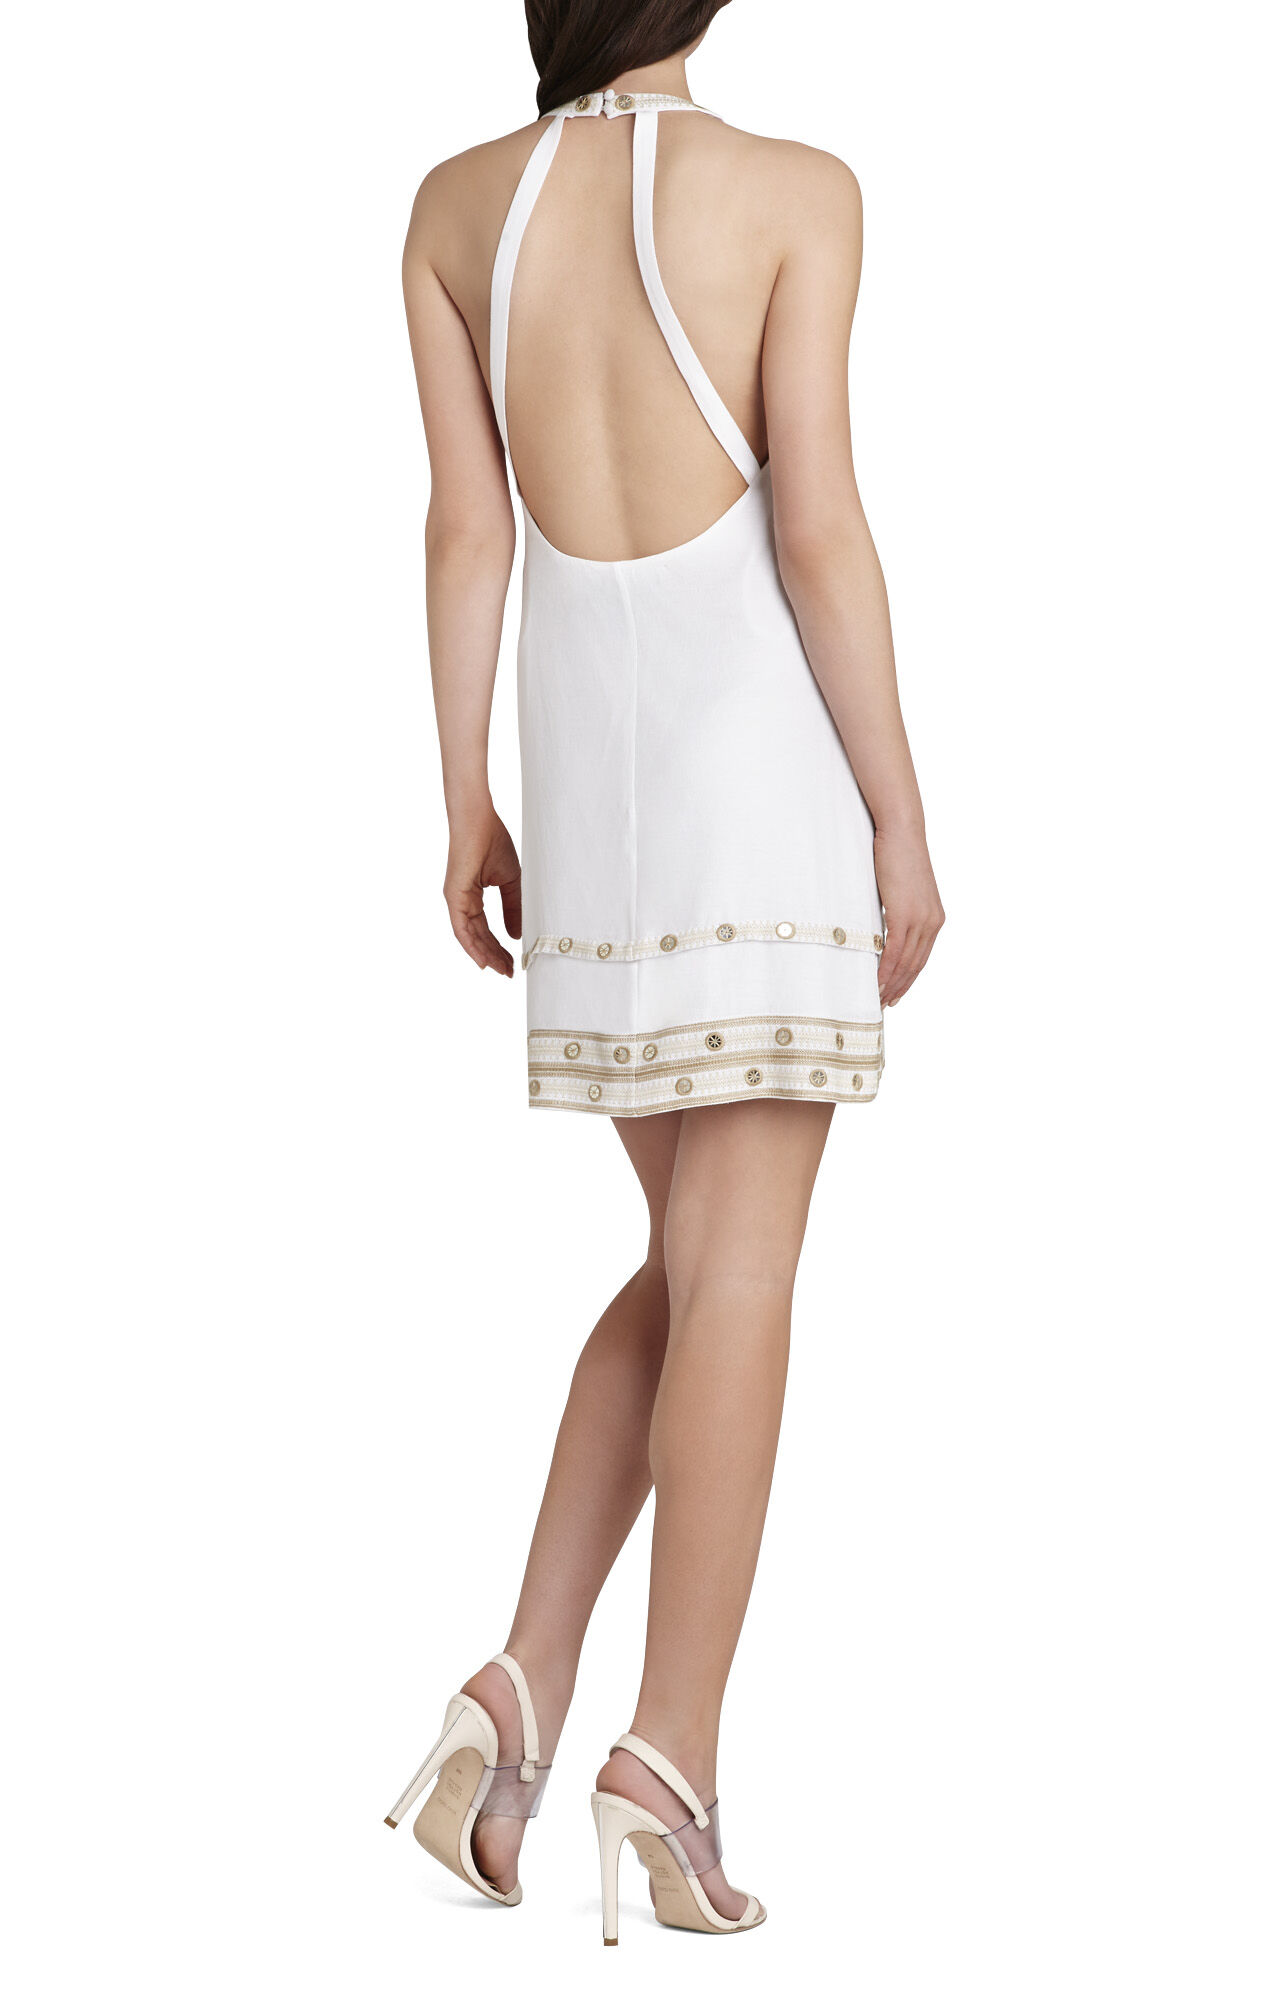 Irena Embellished Halter Dress